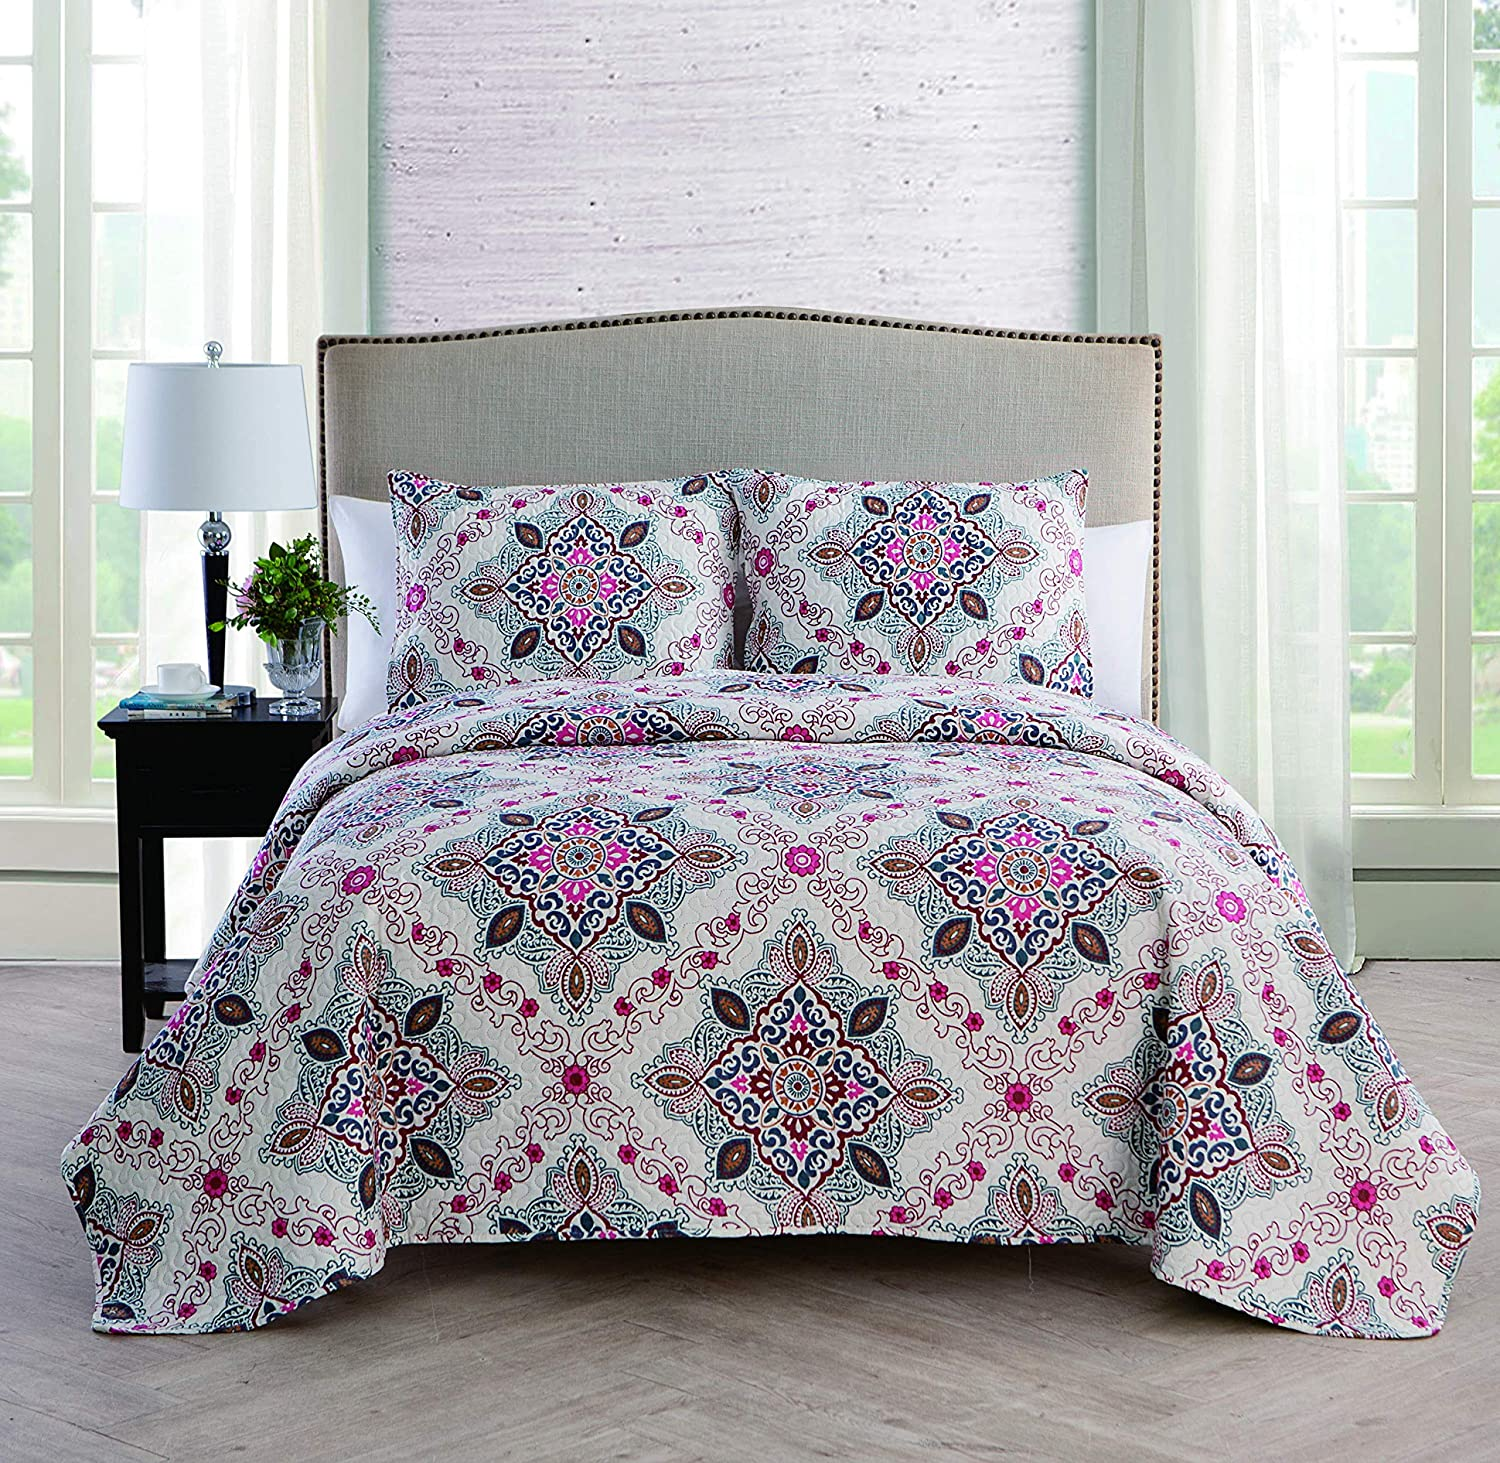 VCNY Home Wyndham 3 Piece Reversible Quilt Set, King, Multi